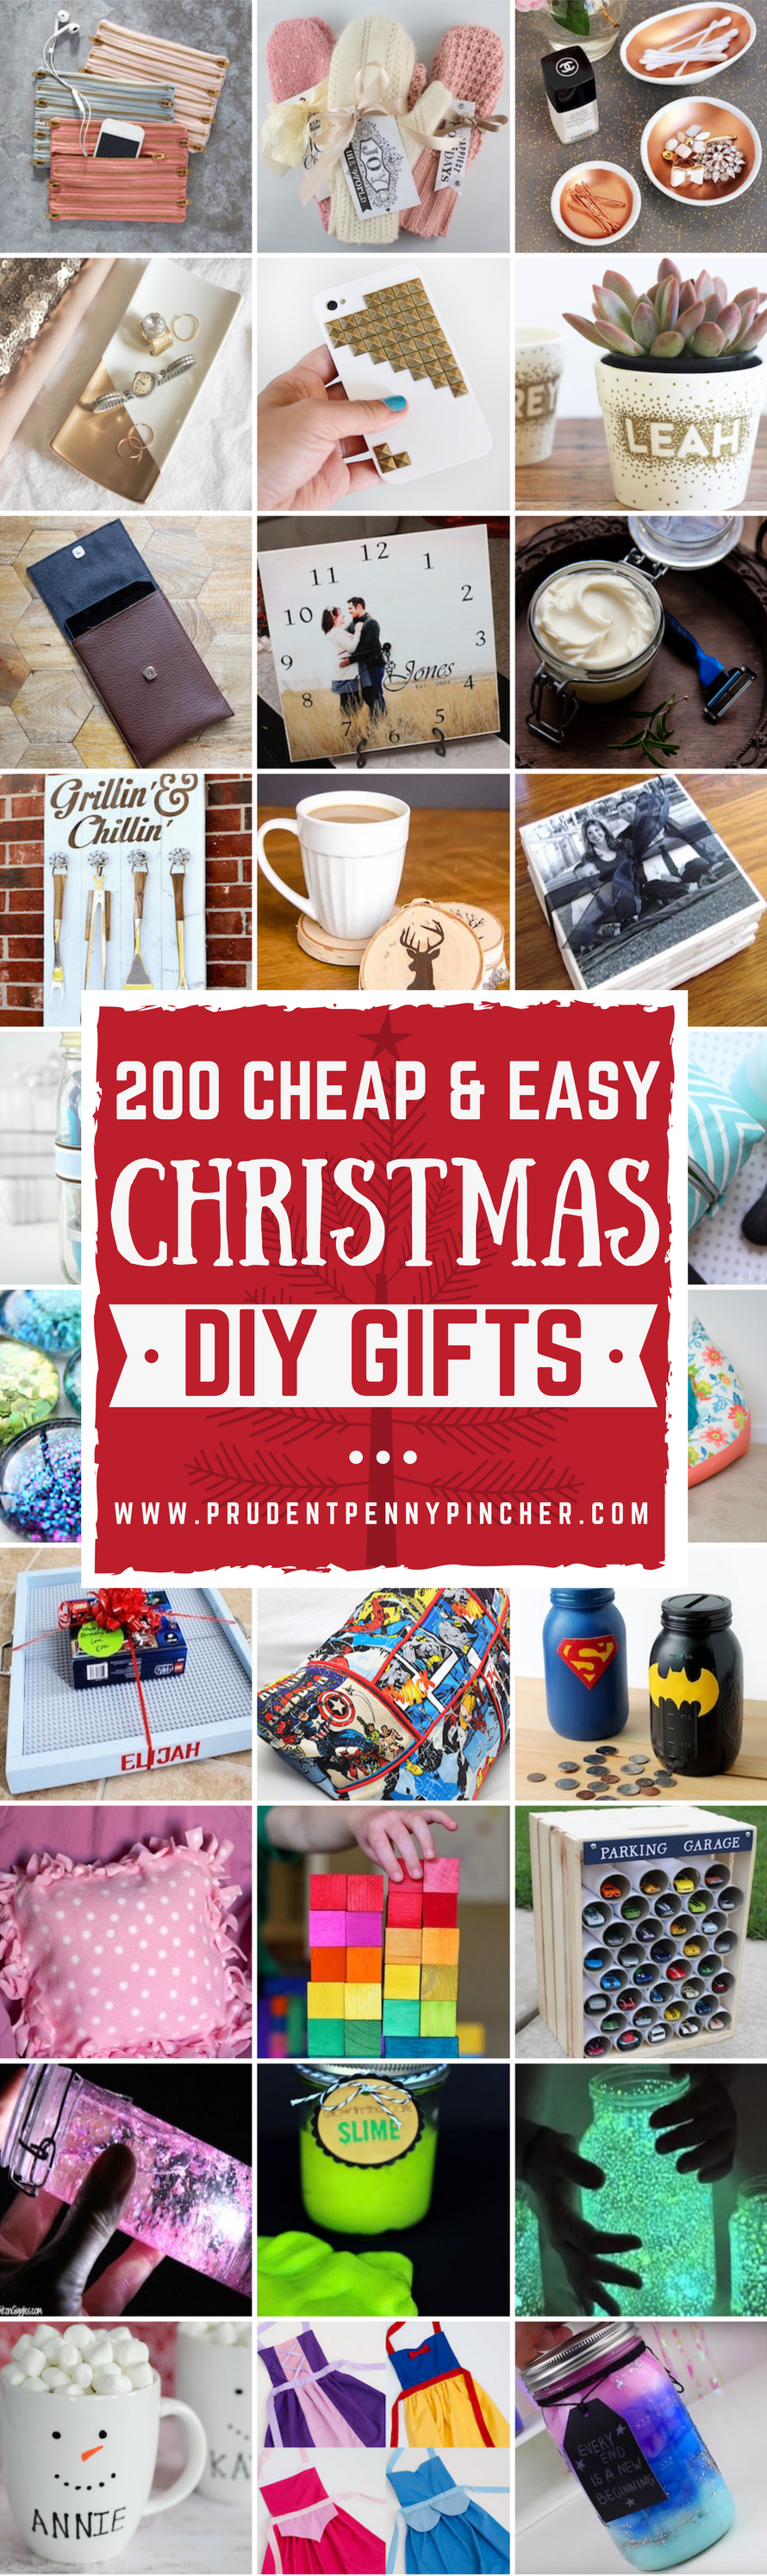 200 Cheap and Easy DIY Christmas Gifts | Prudent Penny Pincher ...